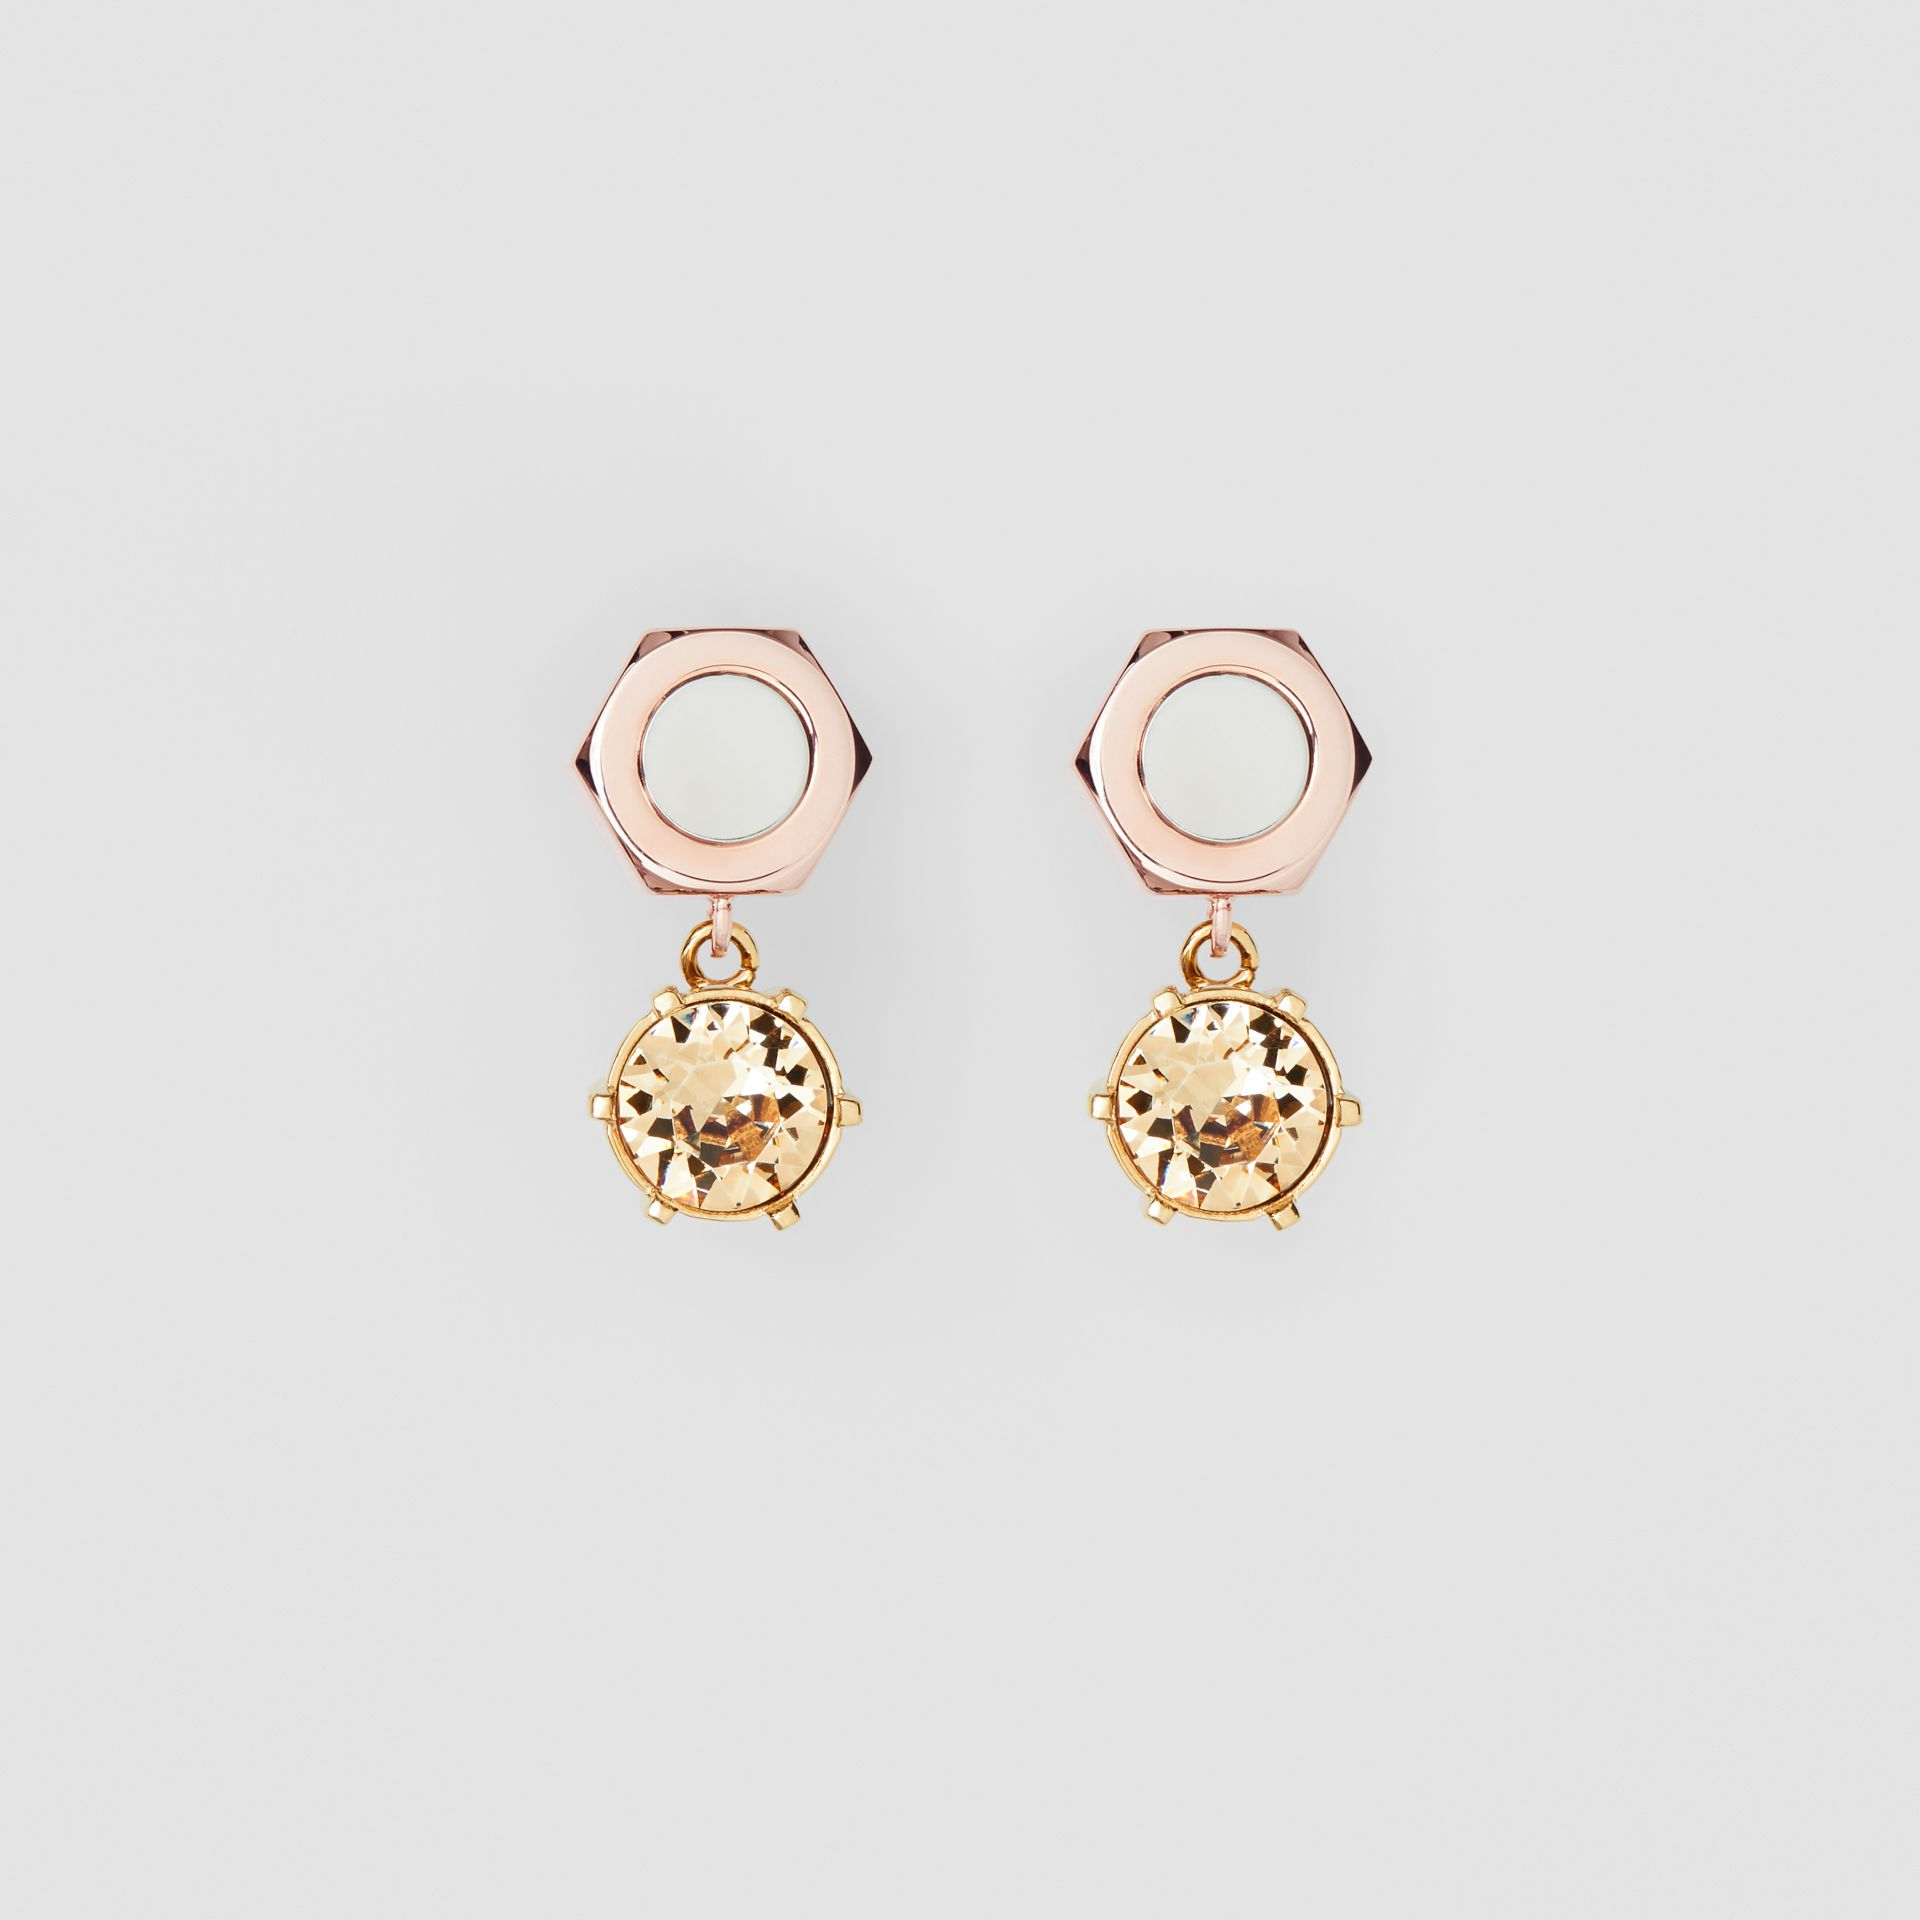 Crystal Charm Rose Gold-plated Nut and Bolt Earrings in Gold/palladium - Women | Burberry United States - gallery image 0